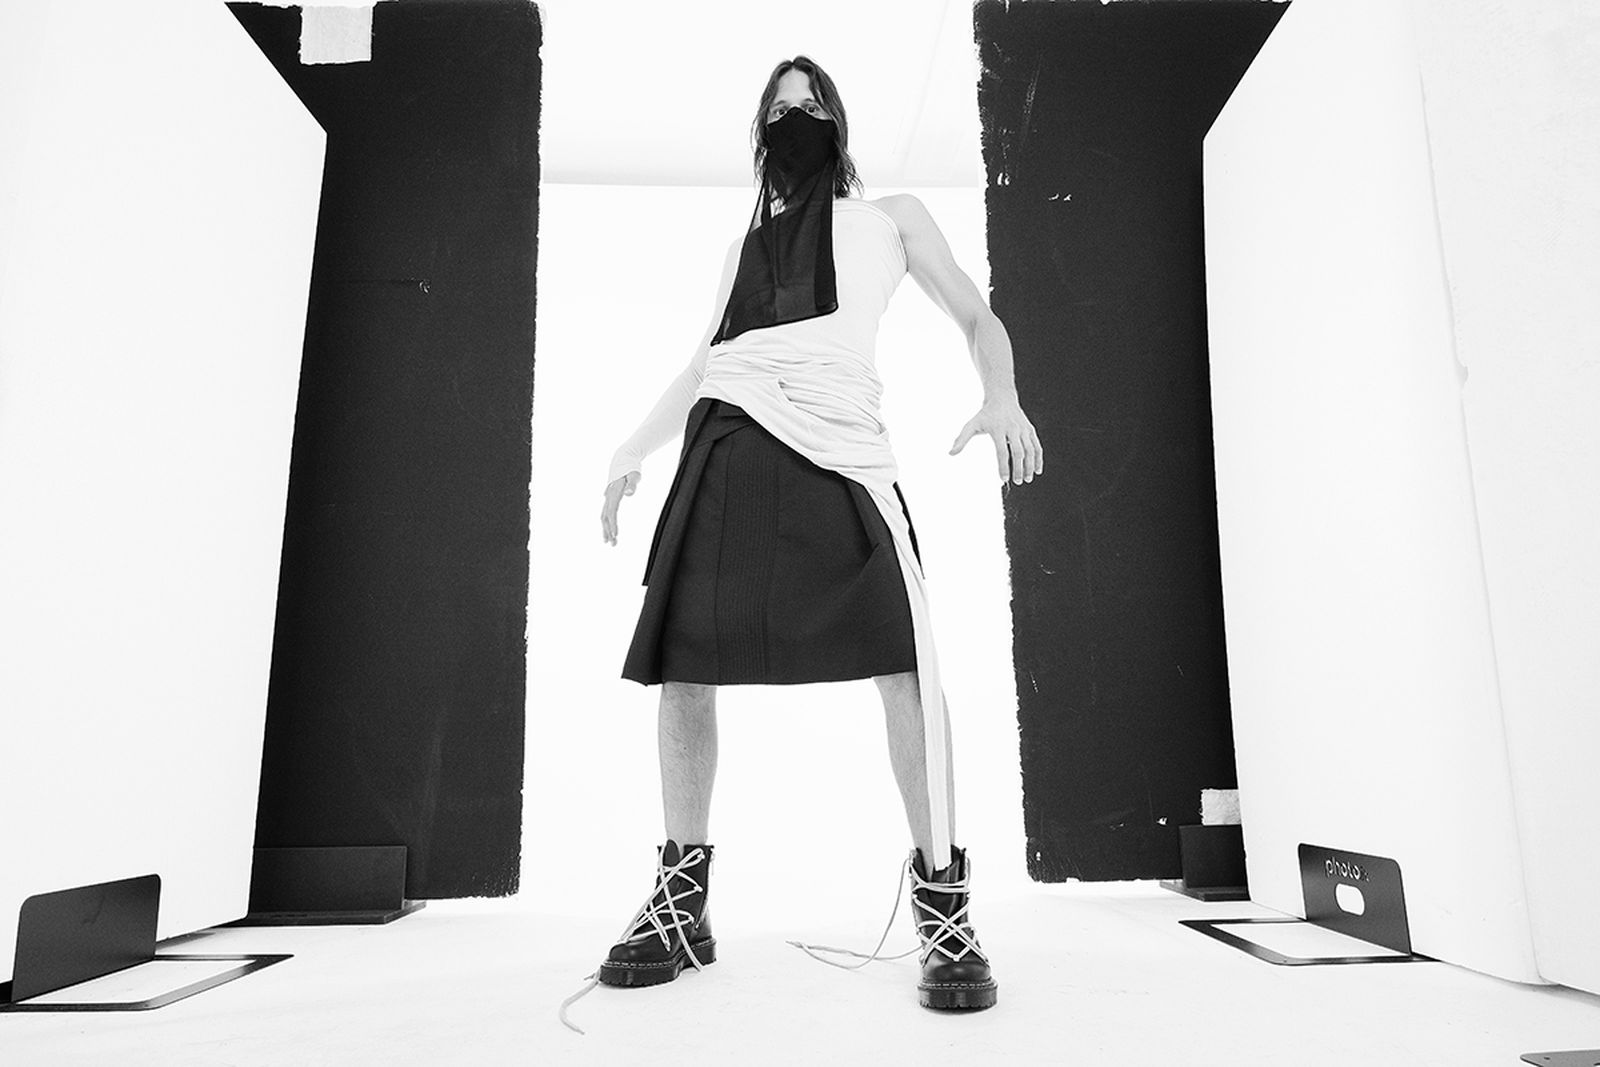 rick-owens-dr-martens-1460-bex-release-date-price-01